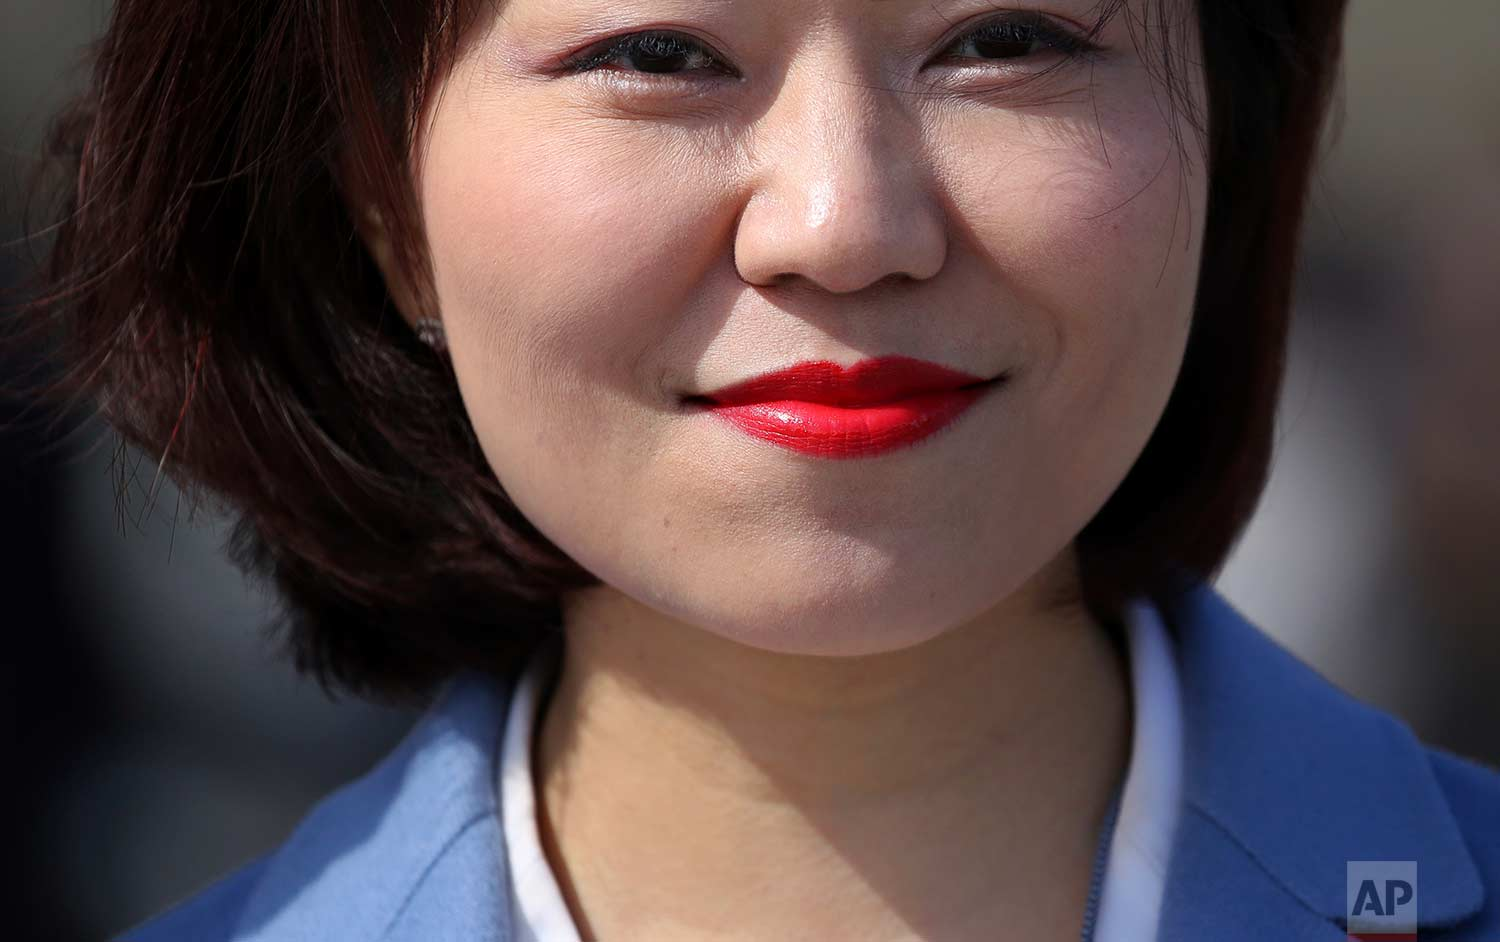 In this Thursday, March 15, 2018 photo, a staff member wears red lipstick as she leaves after the closing session of the Chinese People's Political Consultative Conference (CPPCC) at the Great Hall of the People in Beijing. (AP Photo/Aijaz Rahi)